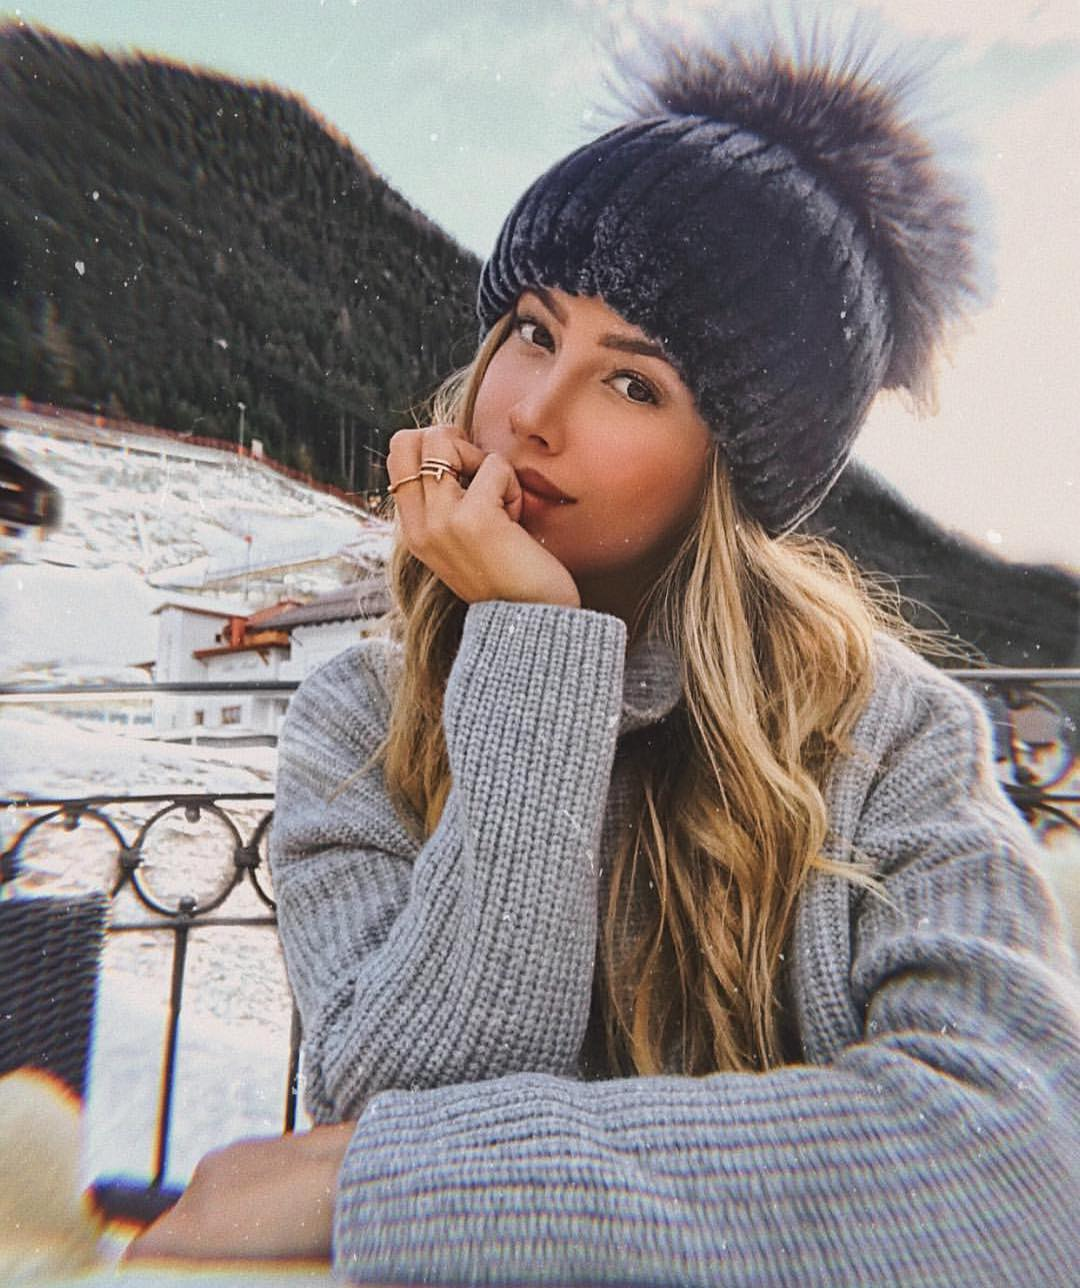 Dark Grey Beanie With Fur Pom-Pom For Winter 2019